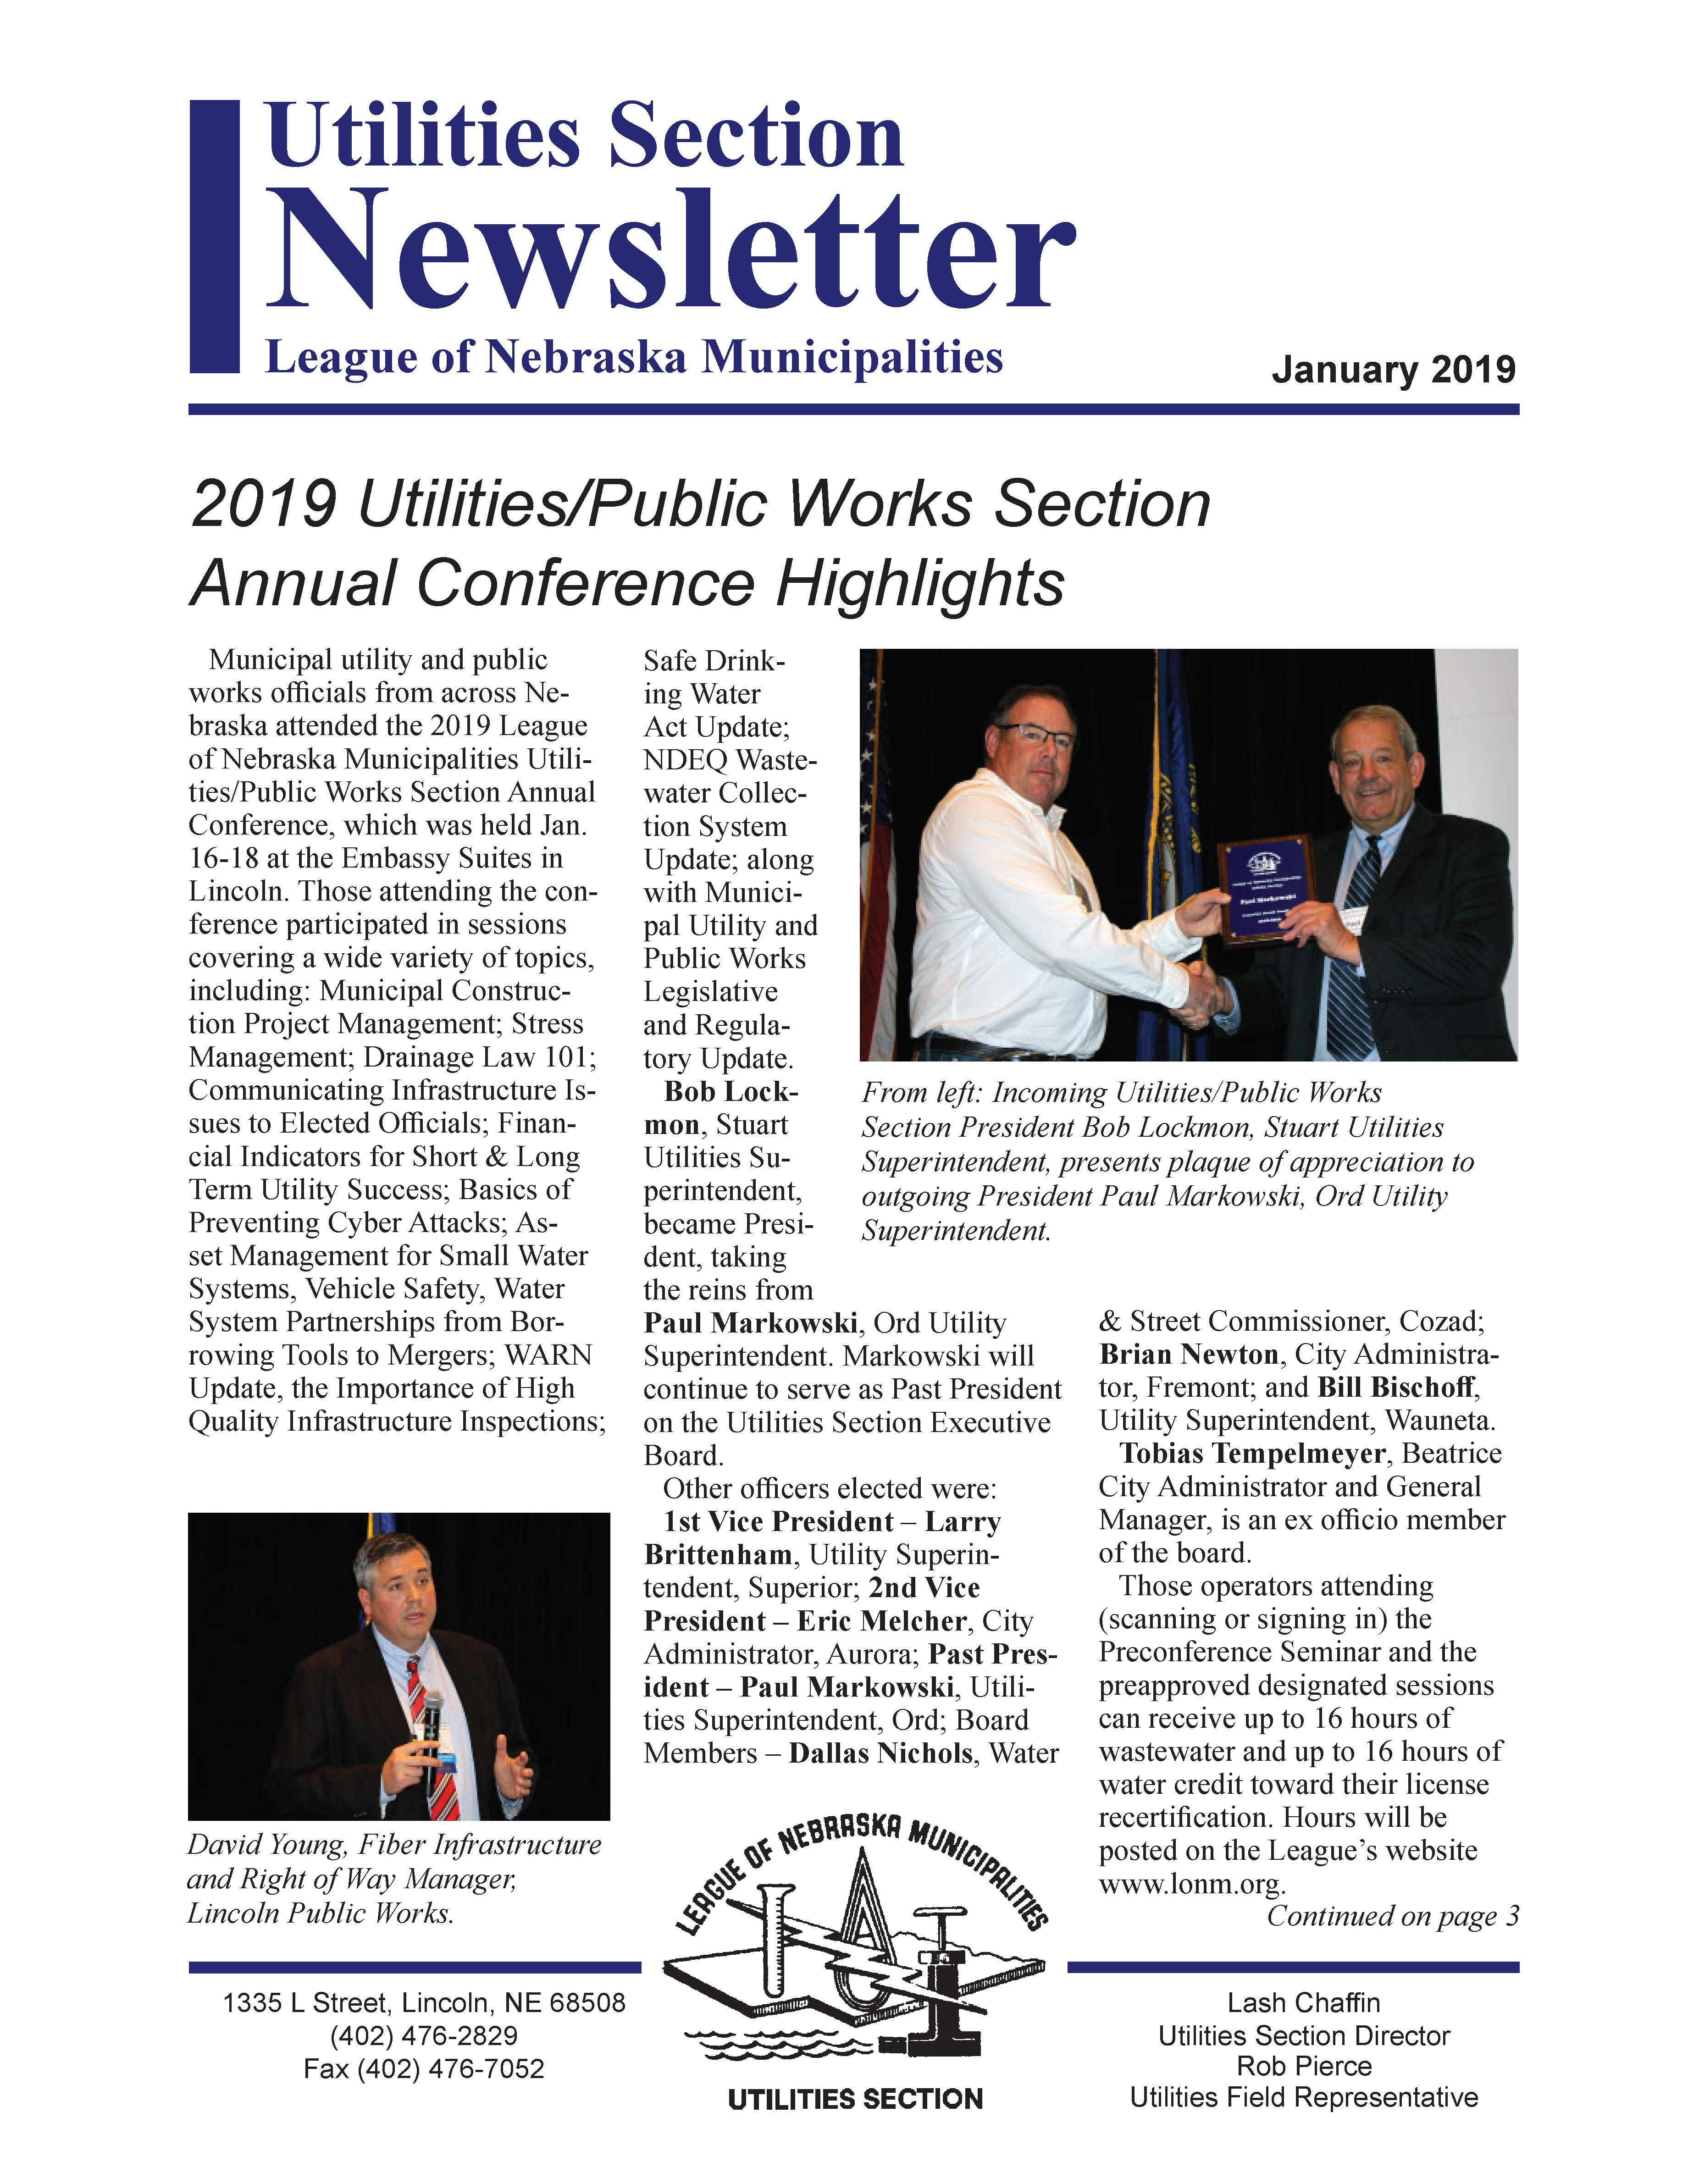 Utilities Section Newsletter